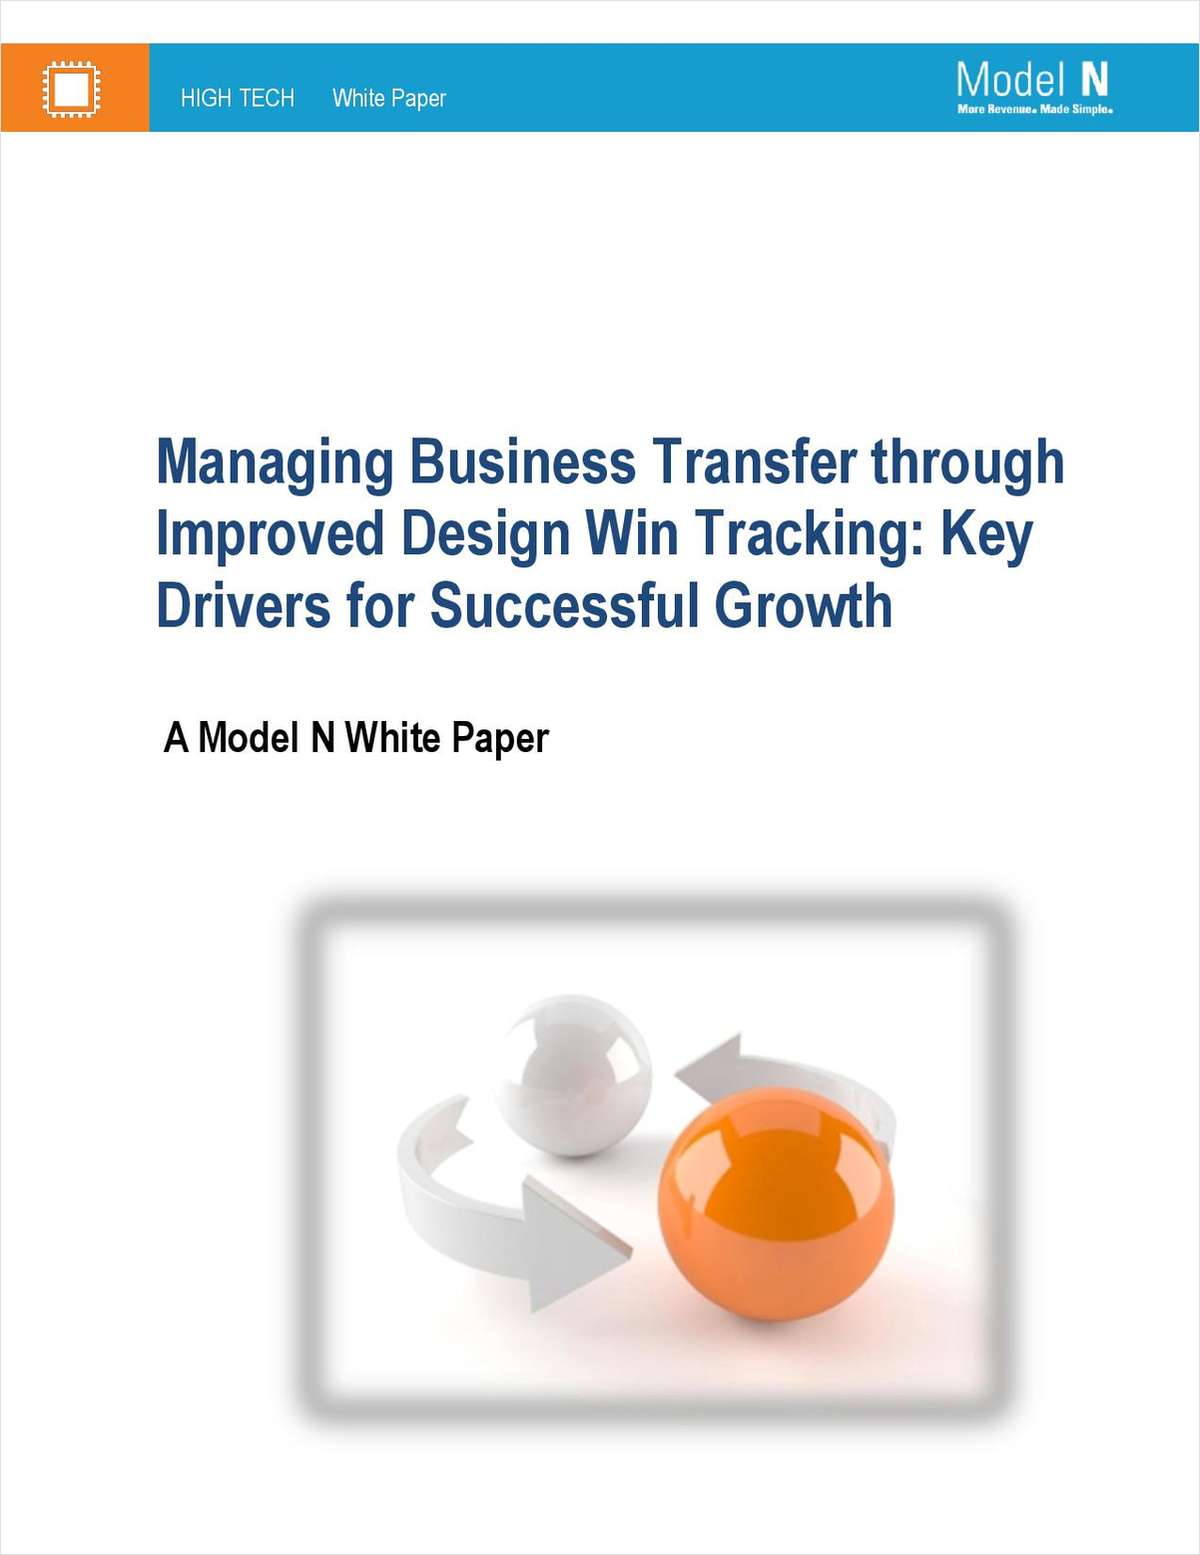 Managing Business Transfer through Improved Design Win Tracking: Key Drivers for Successful Growth